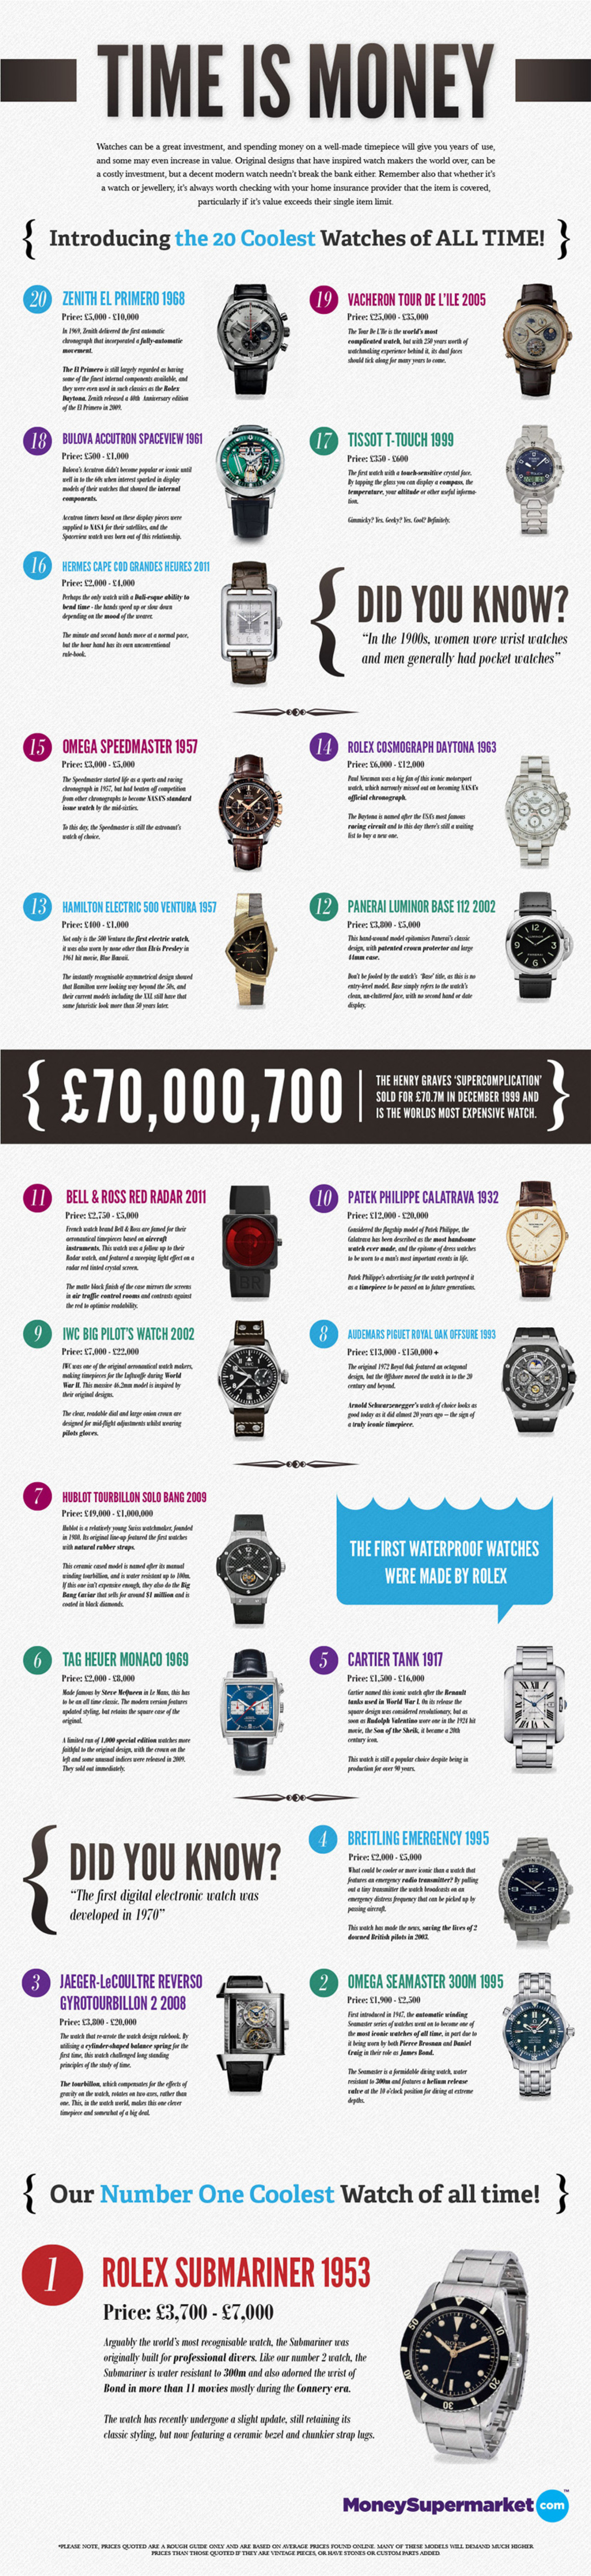 Time is Money Infographic